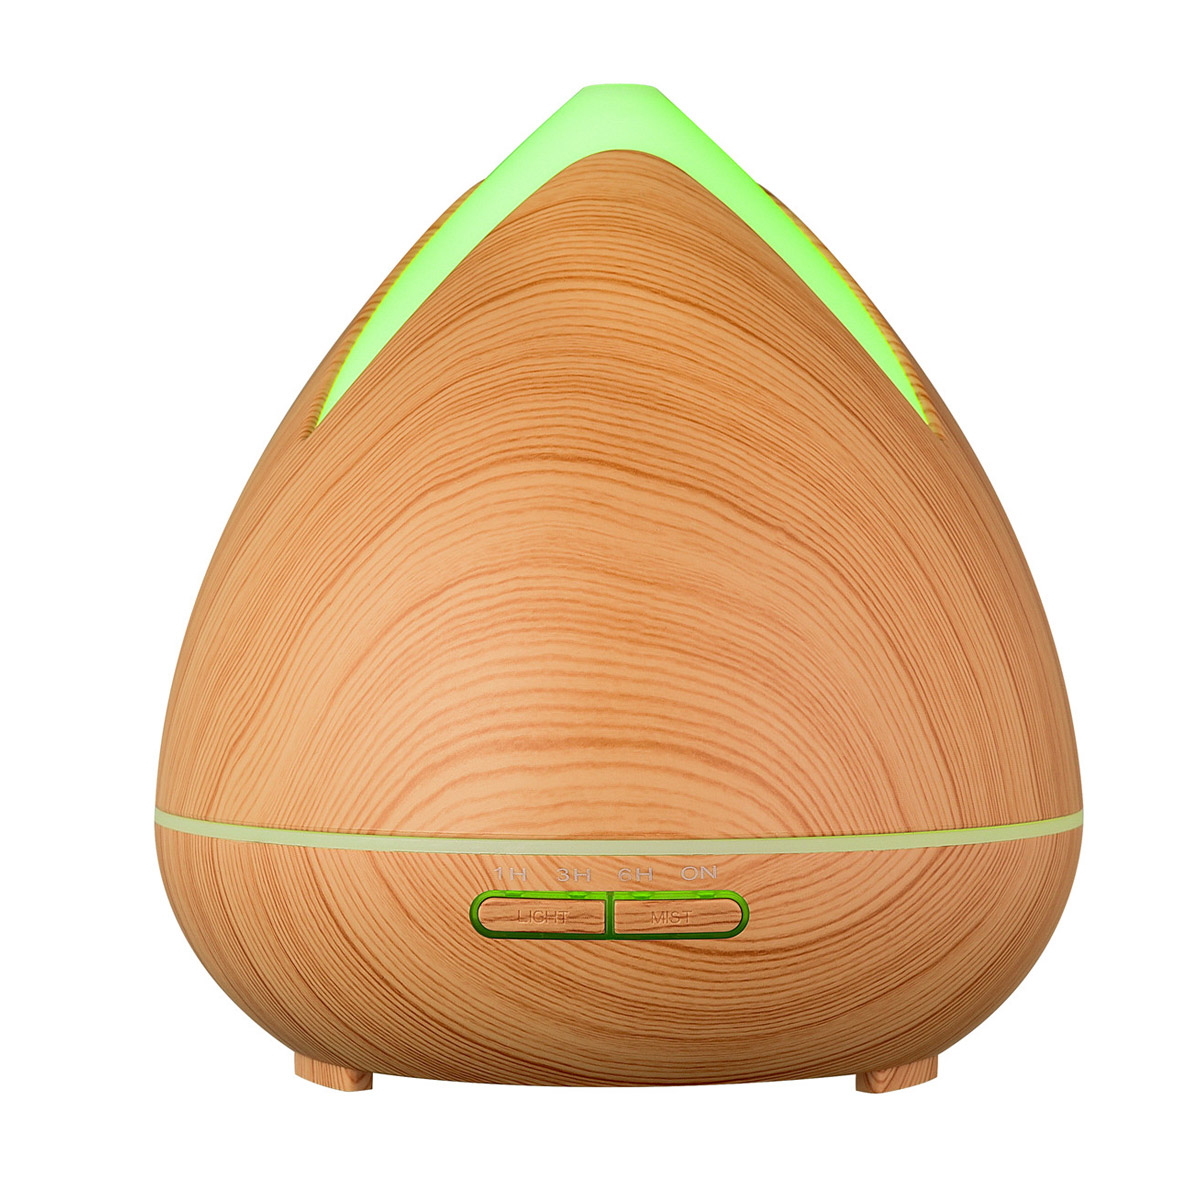 Triangular Shaped Ultrasonic Aroma Diffuser